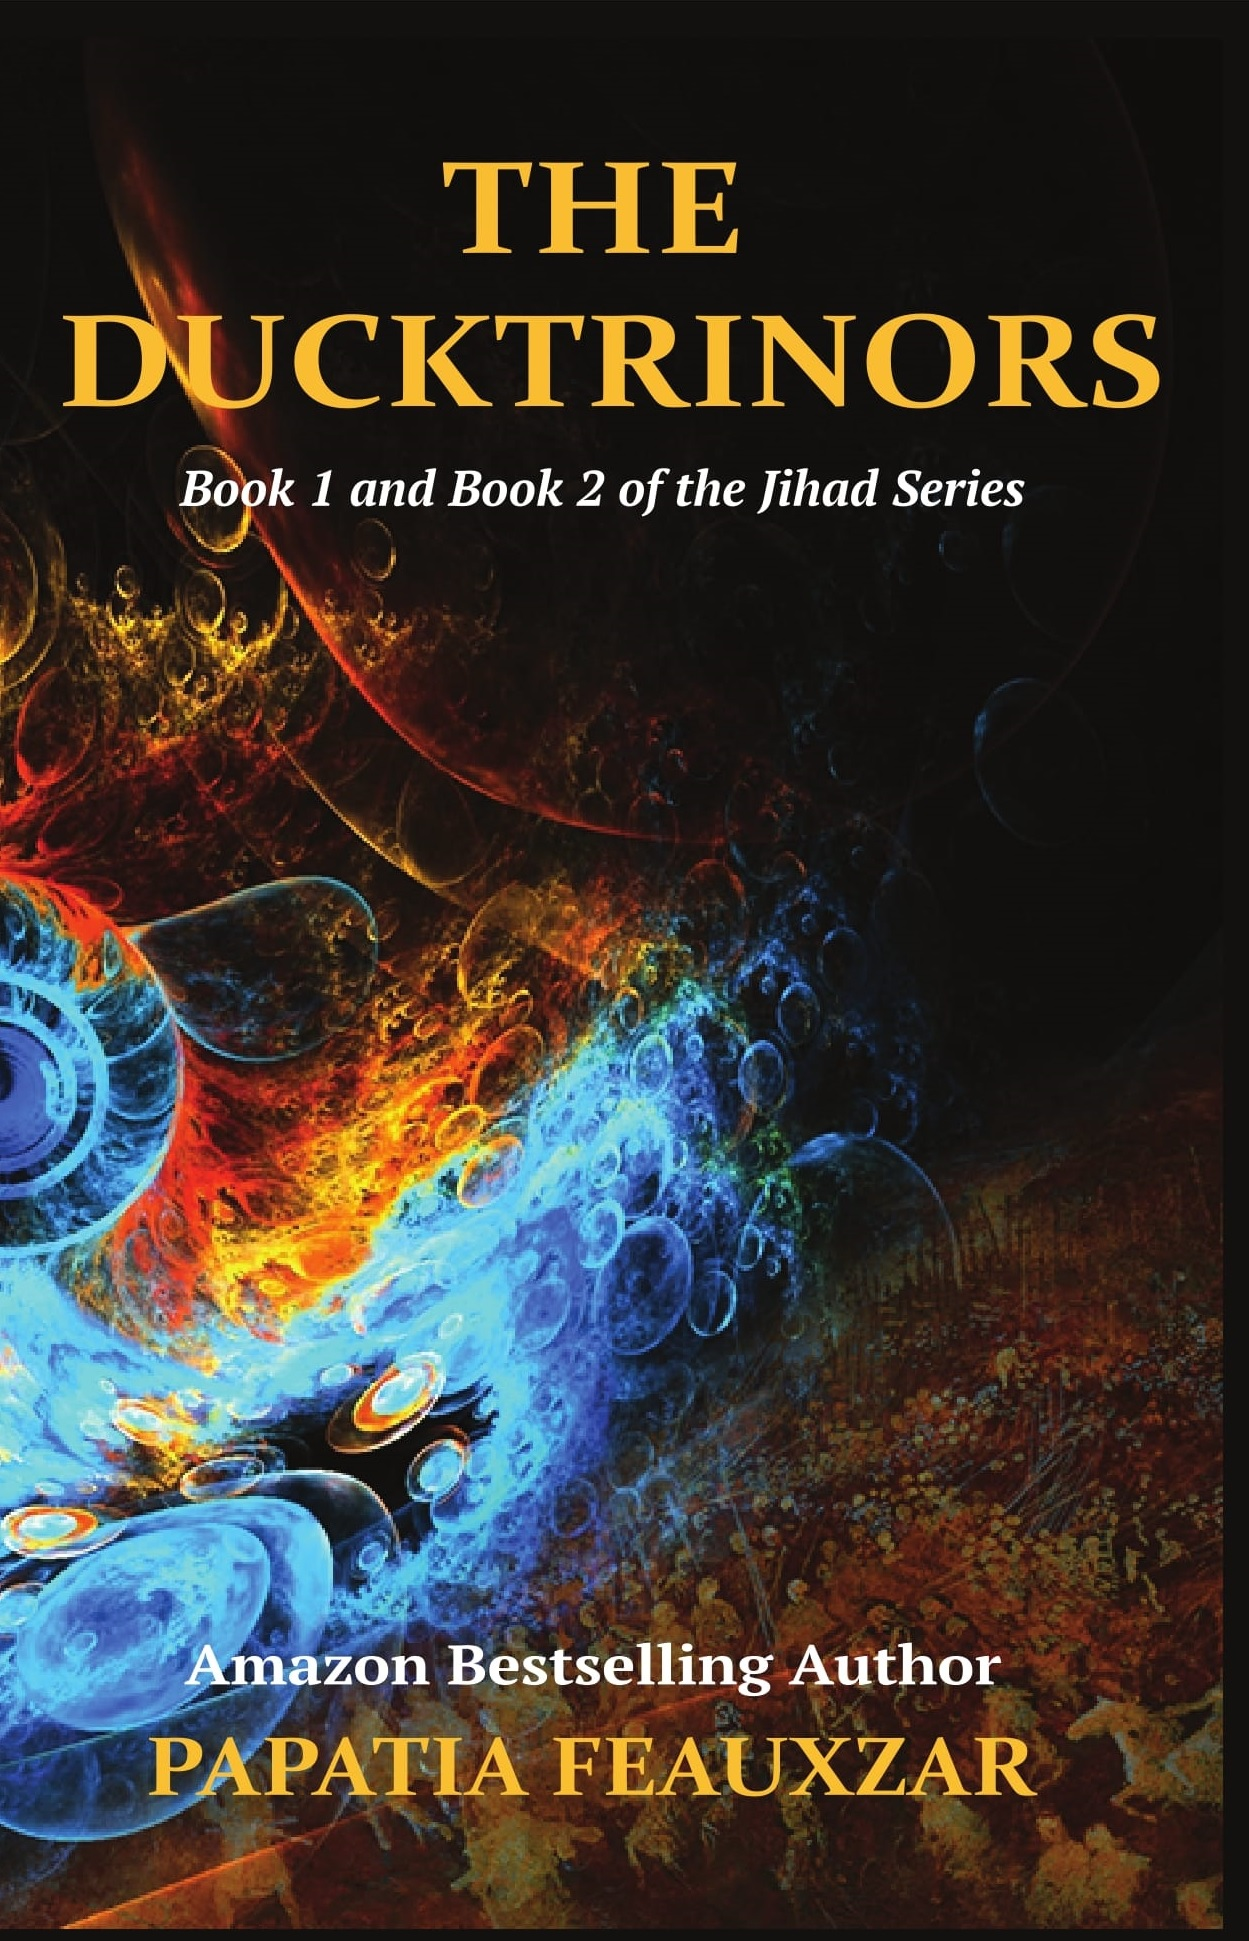 The-Ducktrinors-official-book-cover-eBook-12-19-17.jpg